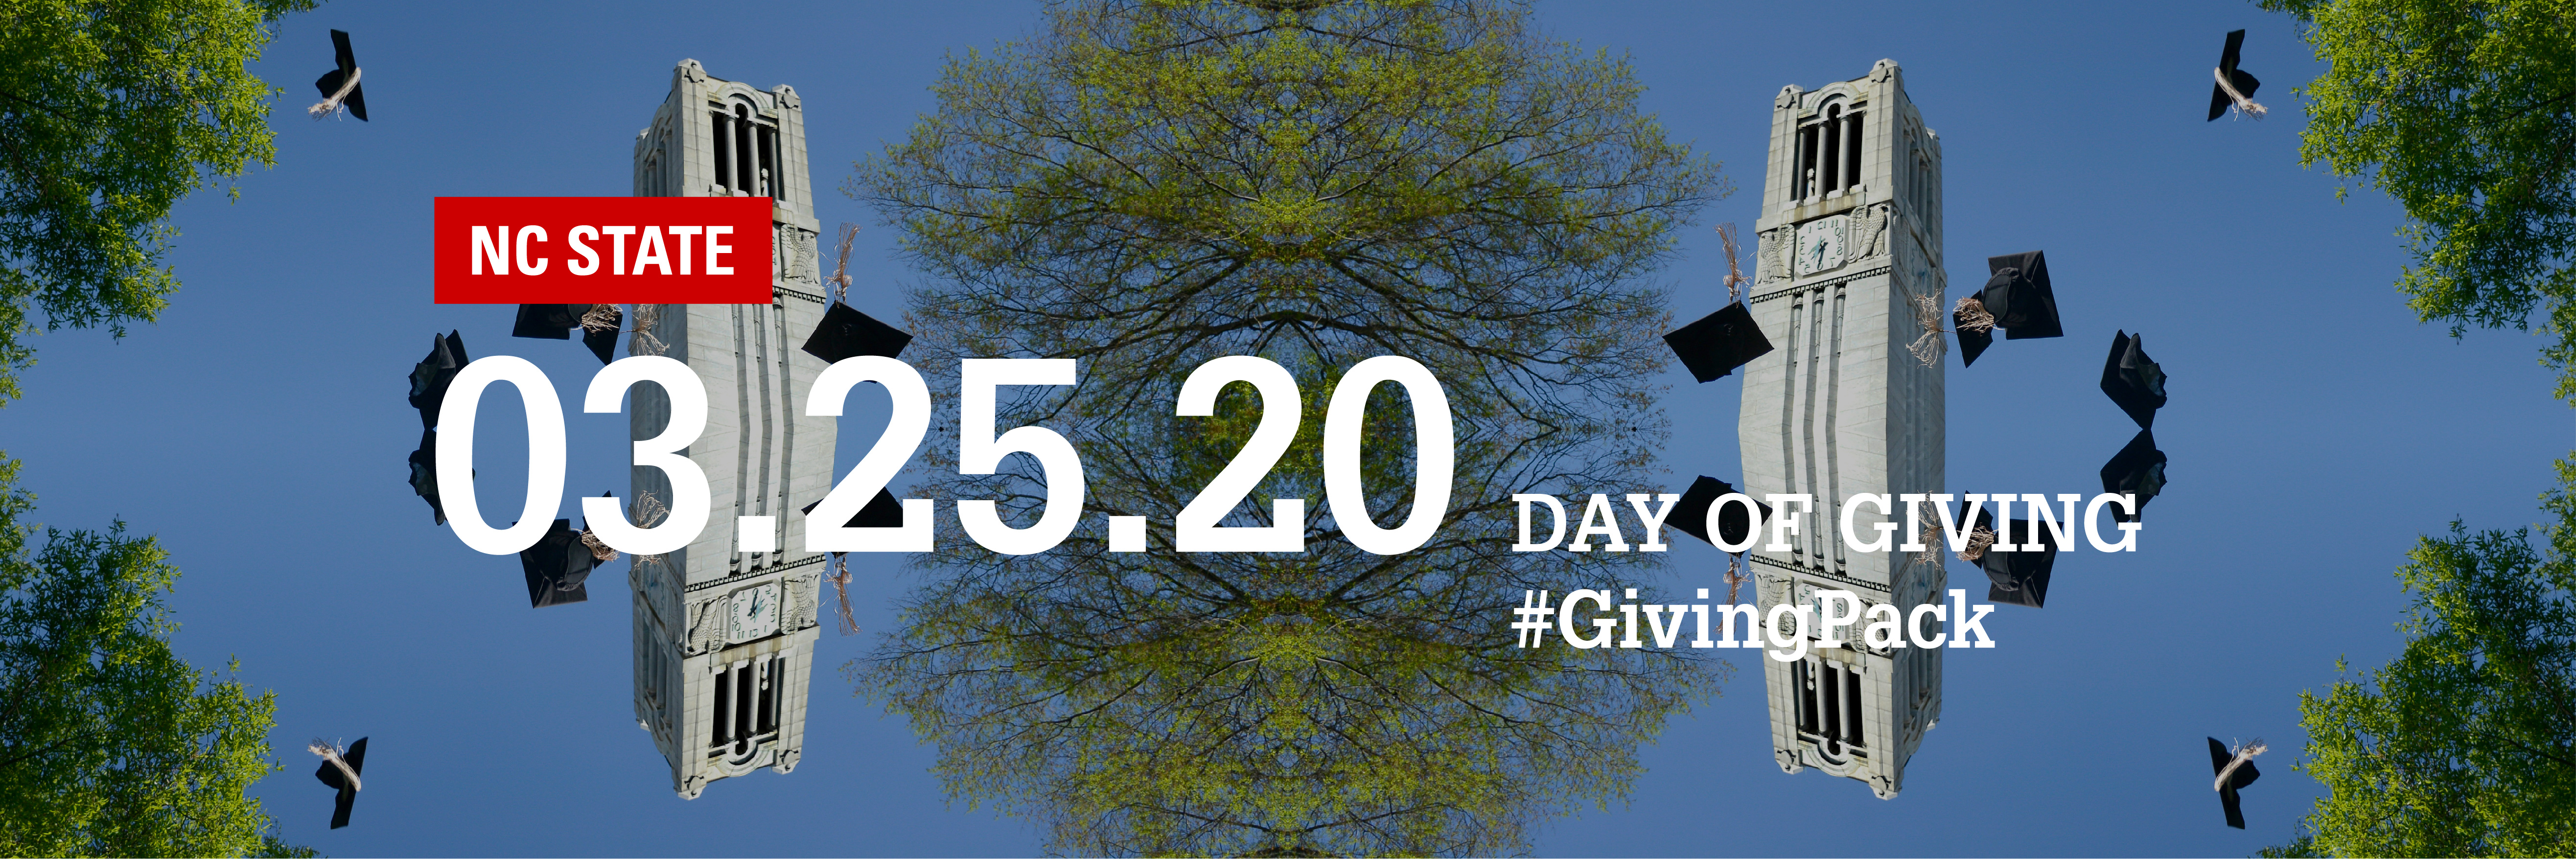 Twitter cover photo with image of the belltower and text reading NC State 03.25.20 Day of Giving Hashtag Giving Pack